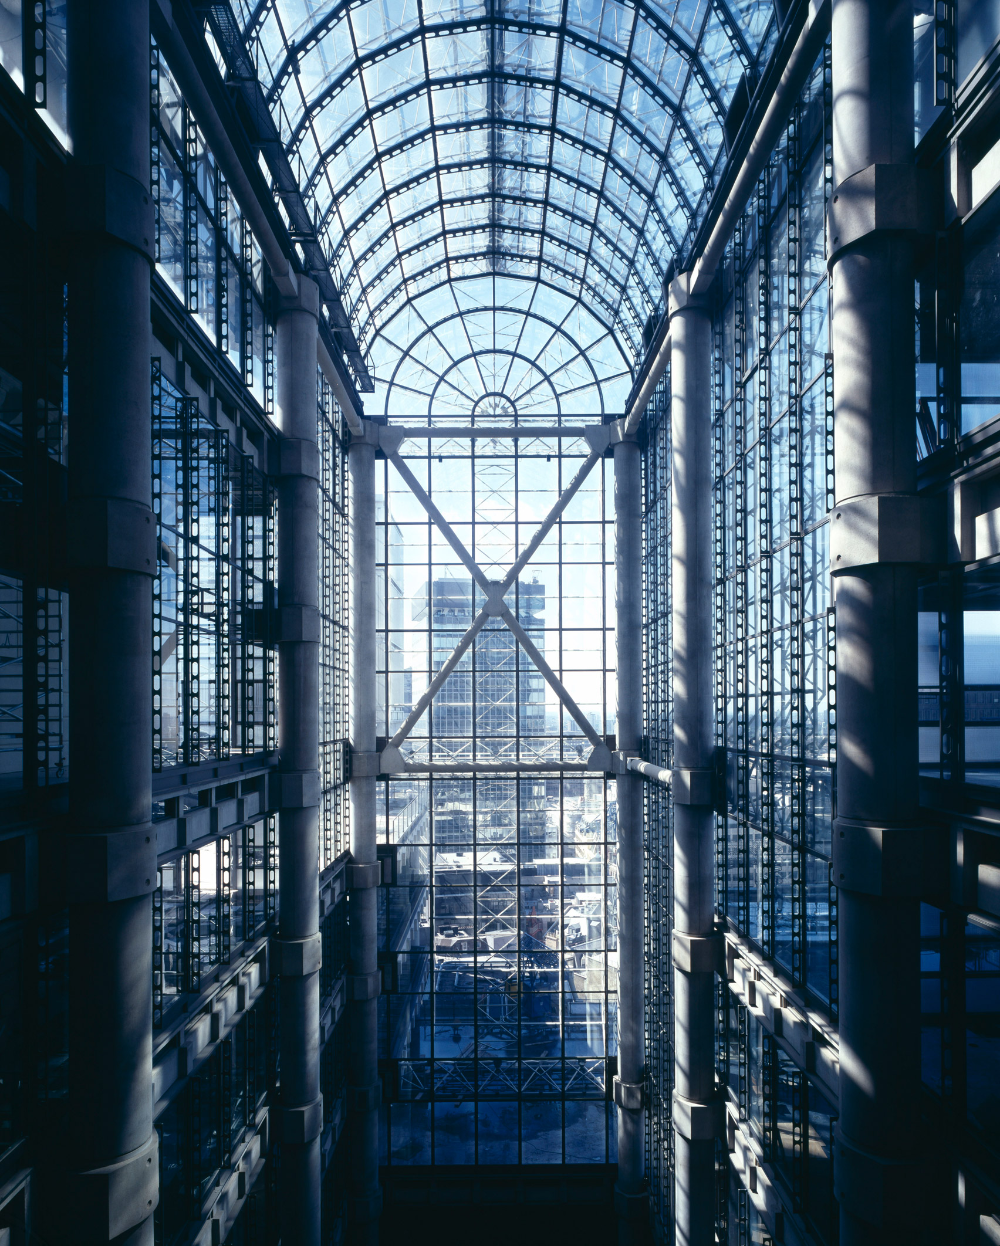 Lloyd's building is Richard Rogers' first hightech office